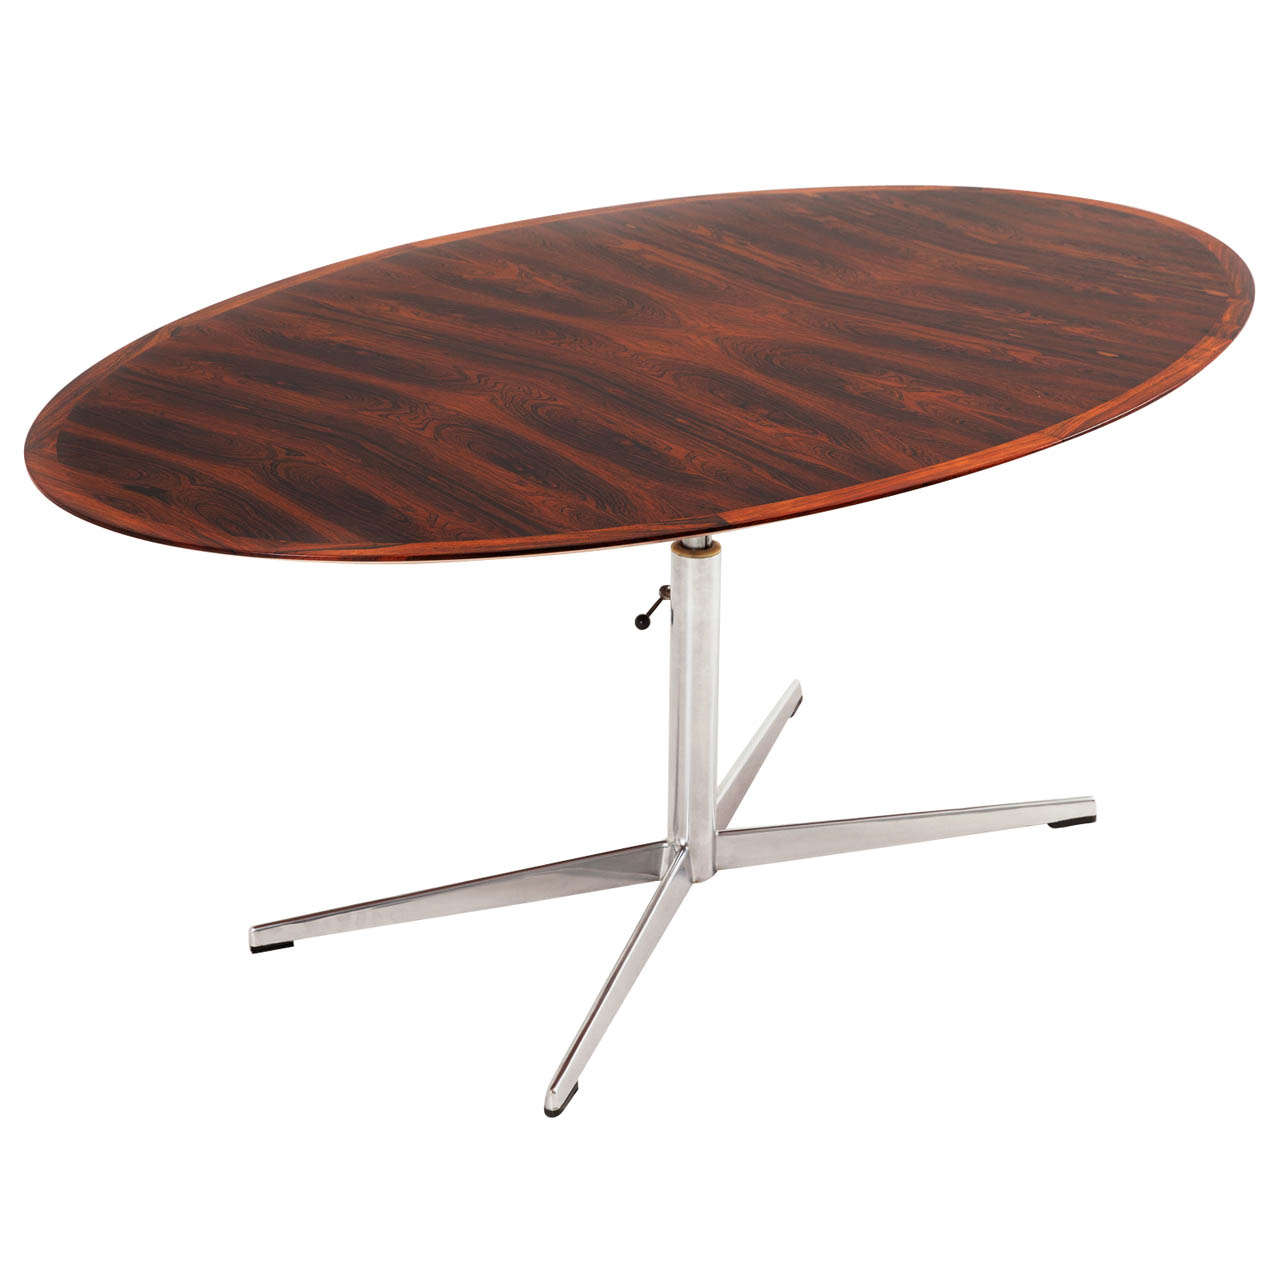 Oval Pedestal Coffee Table: Oval Mahogany Table With Height Adjustable Pedestal Base